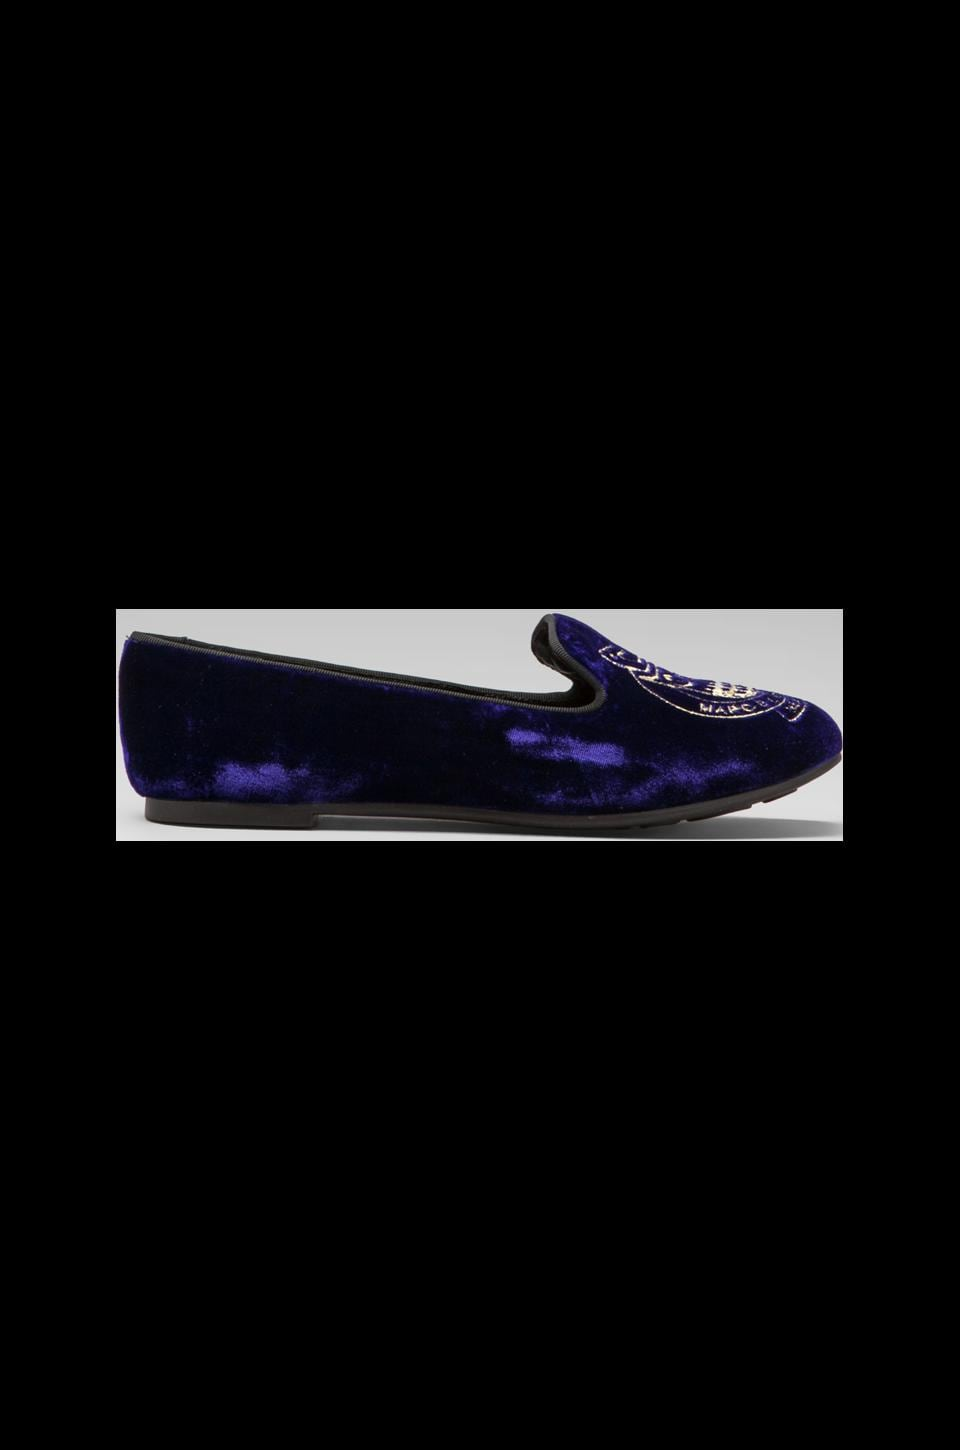 Marc by Marc Jacobs Friends of Mine 10mm Slipper Loafer in Purple/Gold